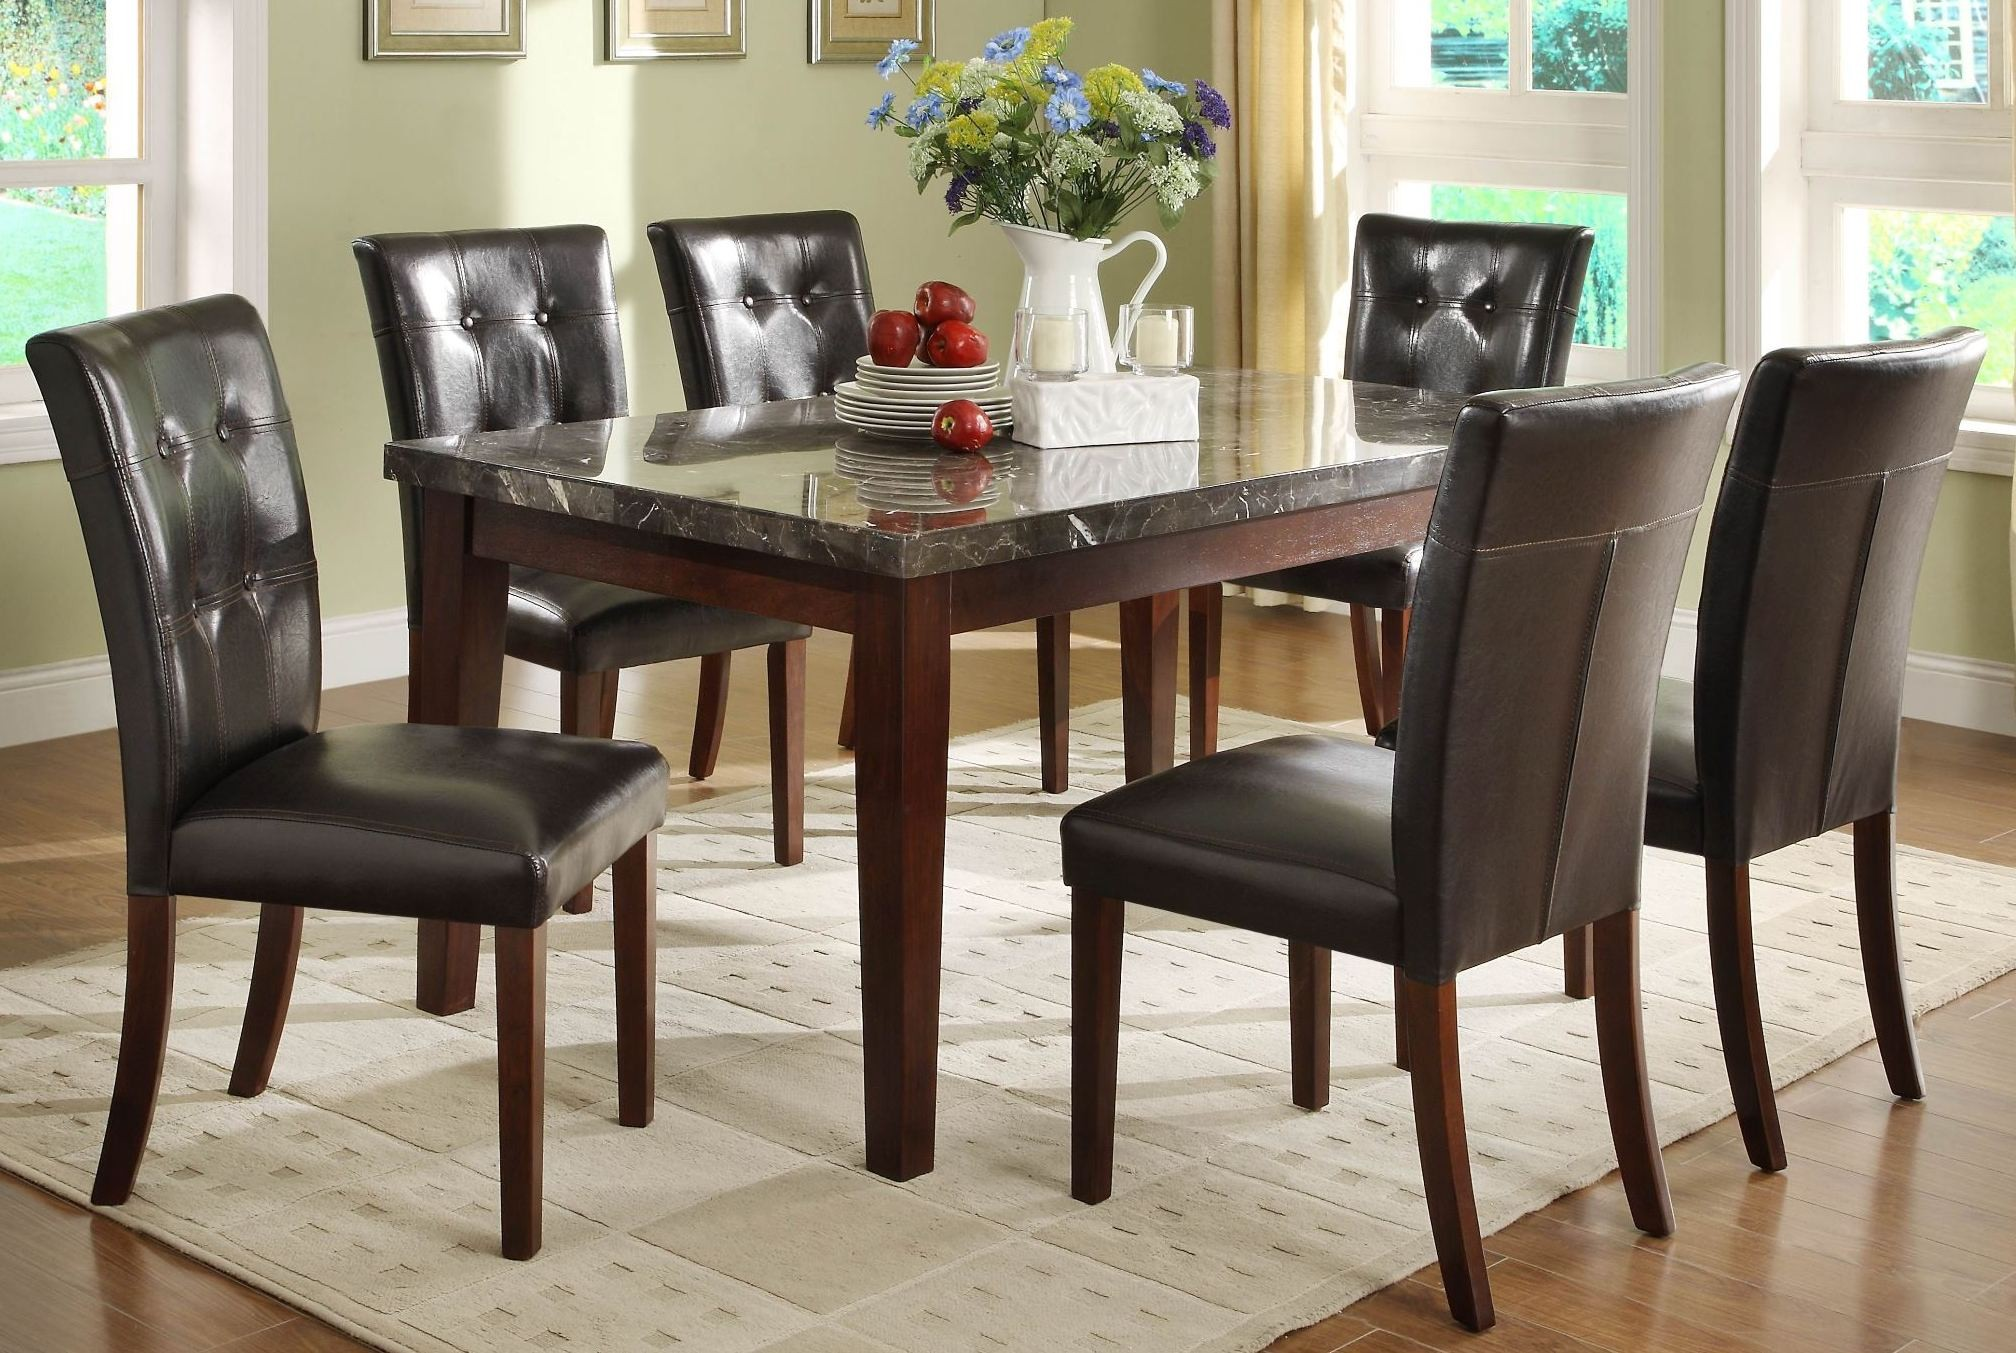 decatur espresso marble top dining room set from